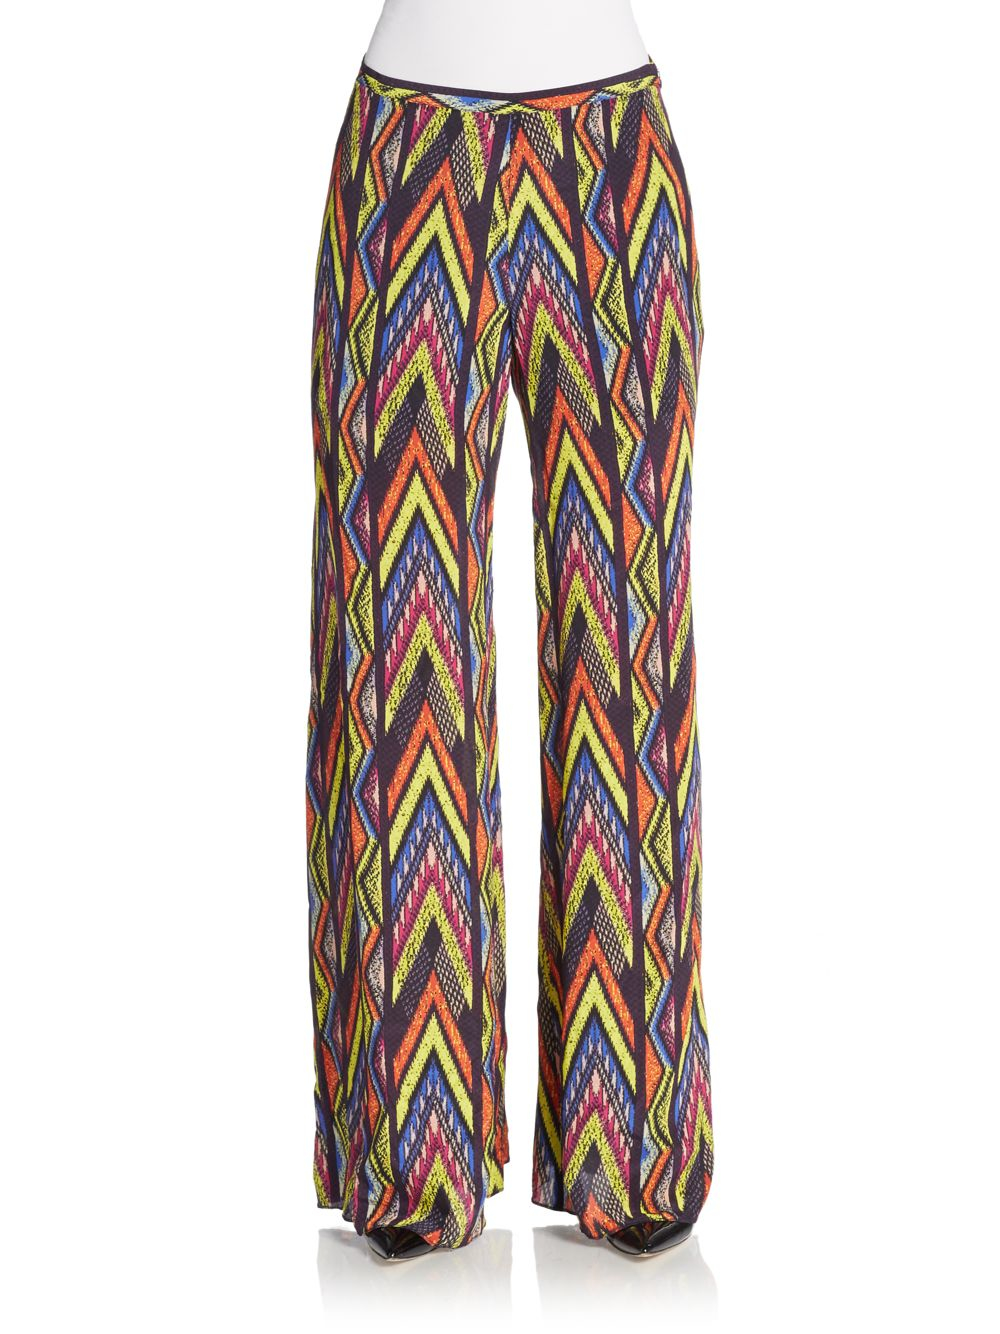 Outlet Factory Outlet Silk Wide Leg Trousers Missoni Free Shipping Excellent 4tJILD